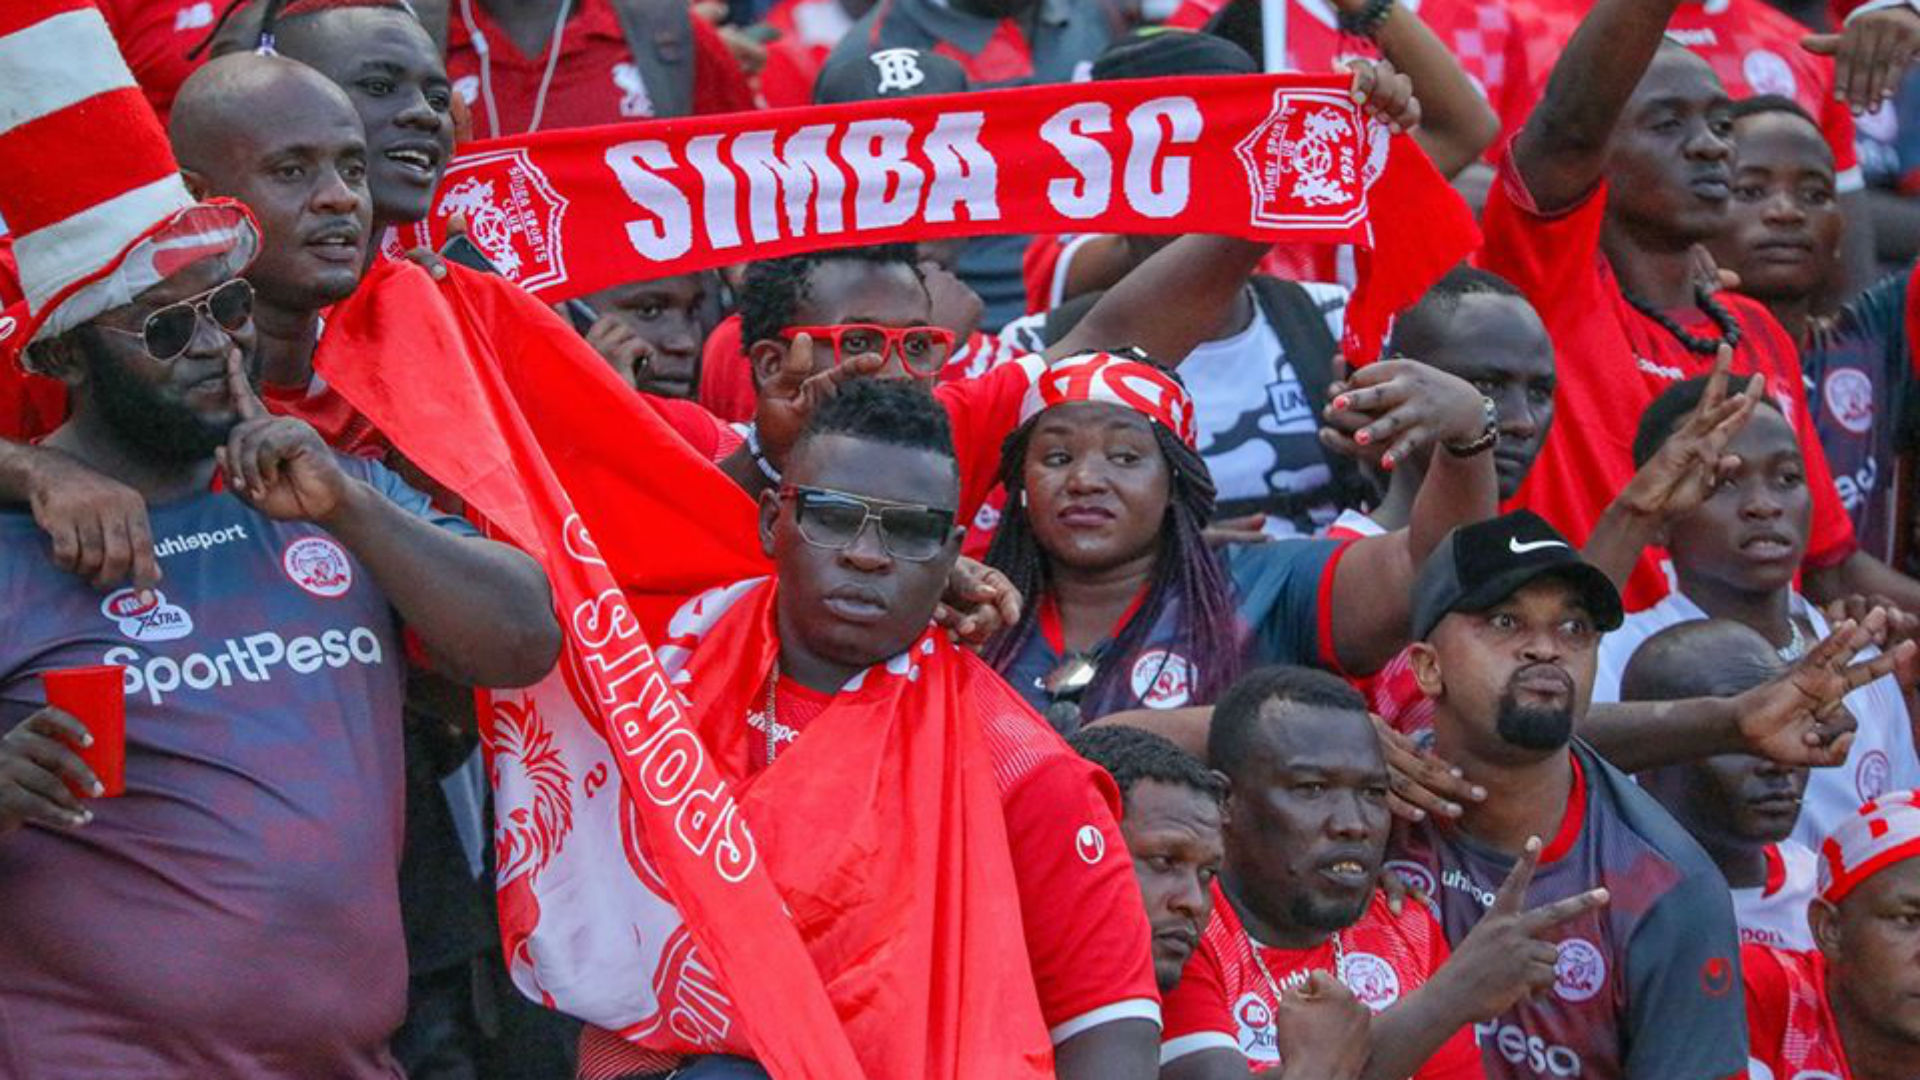 Caf Champions League: Simba SC to play Al Merrikh at Mkapa without fans